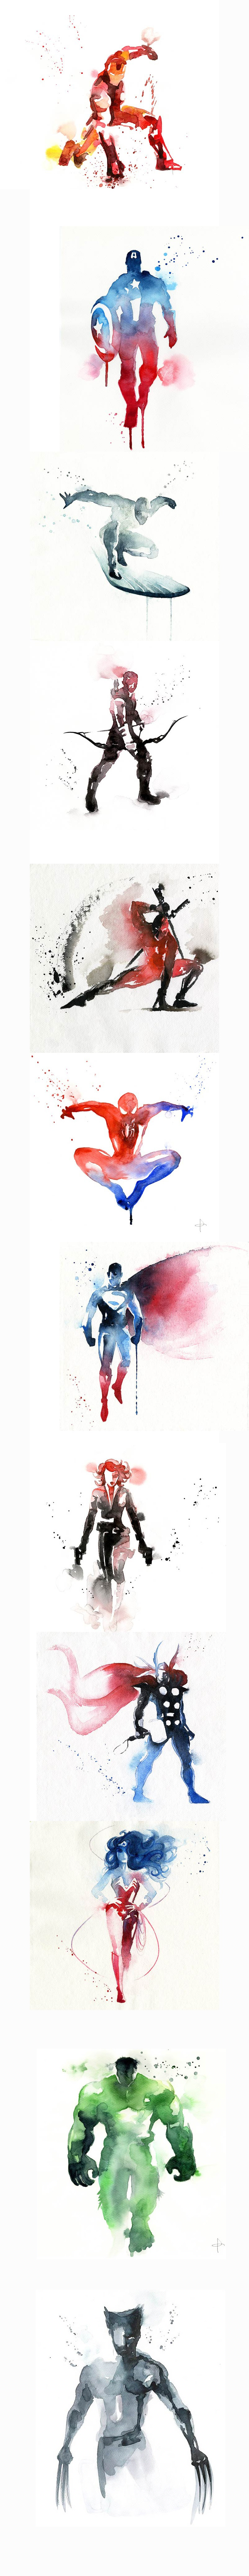 funny picture art superheroes